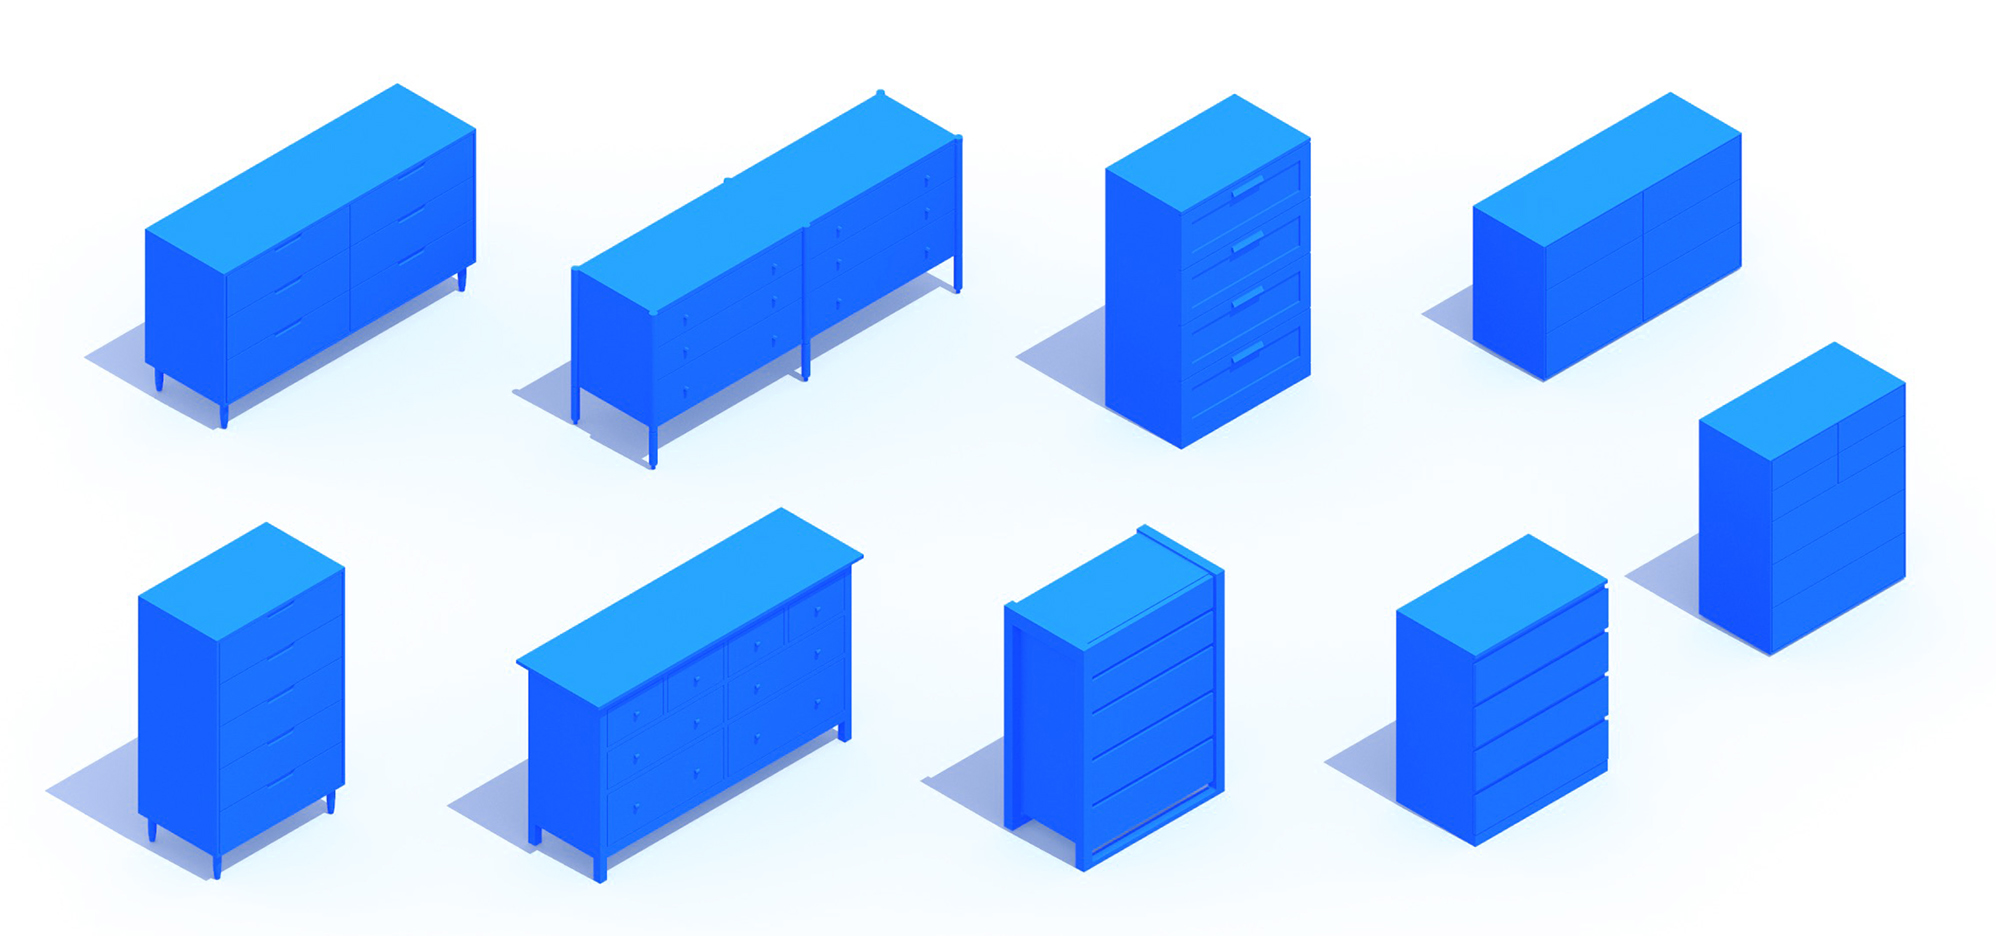 Assorted group of scaled 3D Dressers, or Chests, representing a range of sizes, styles, functions and designs